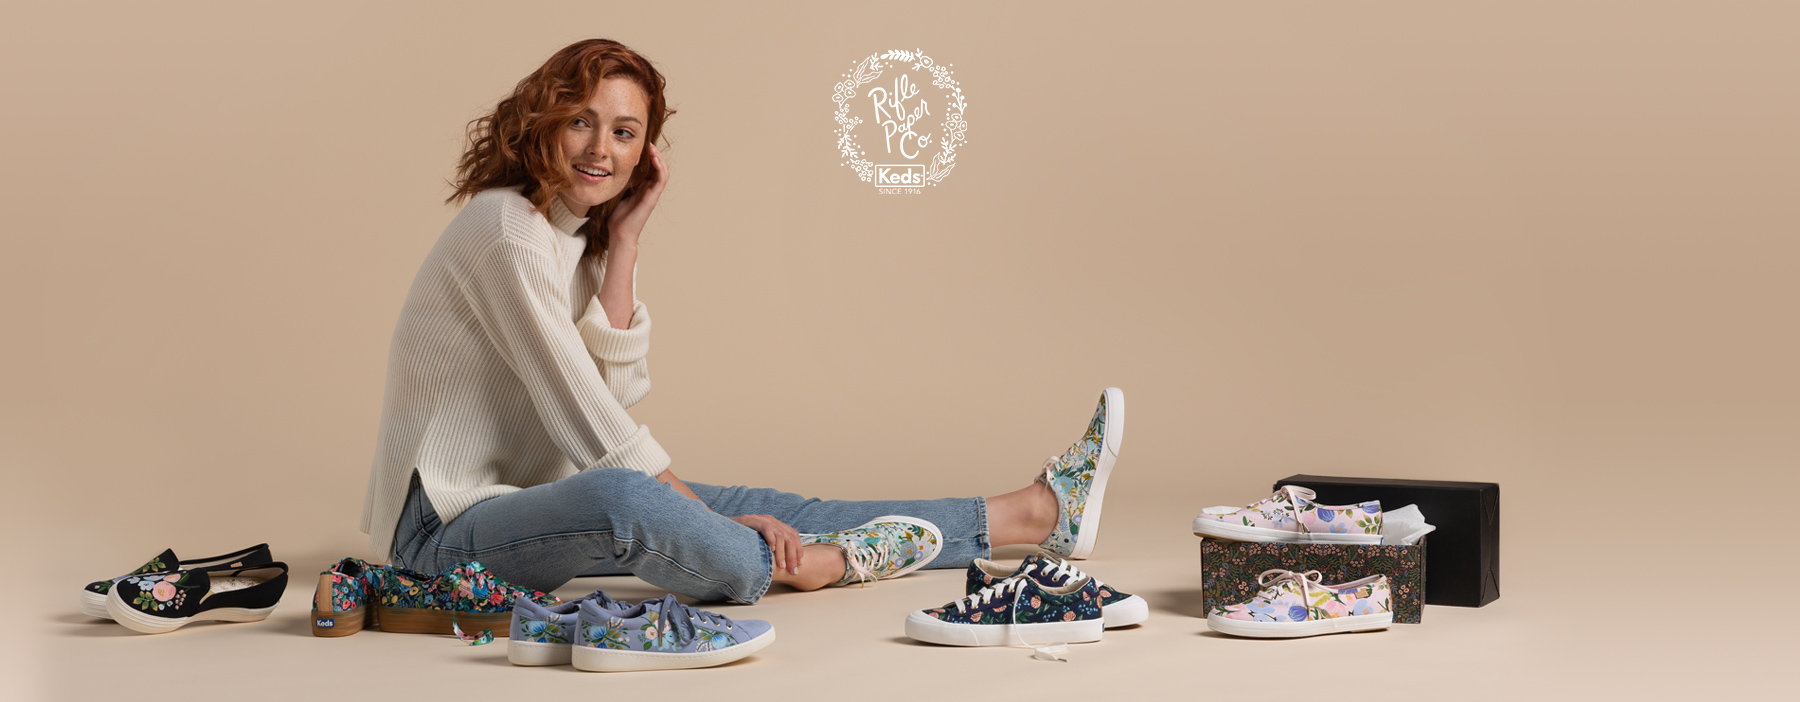 Red-haired woman sitting on the floor sorrounded by Rifle Paper Co print Keds.